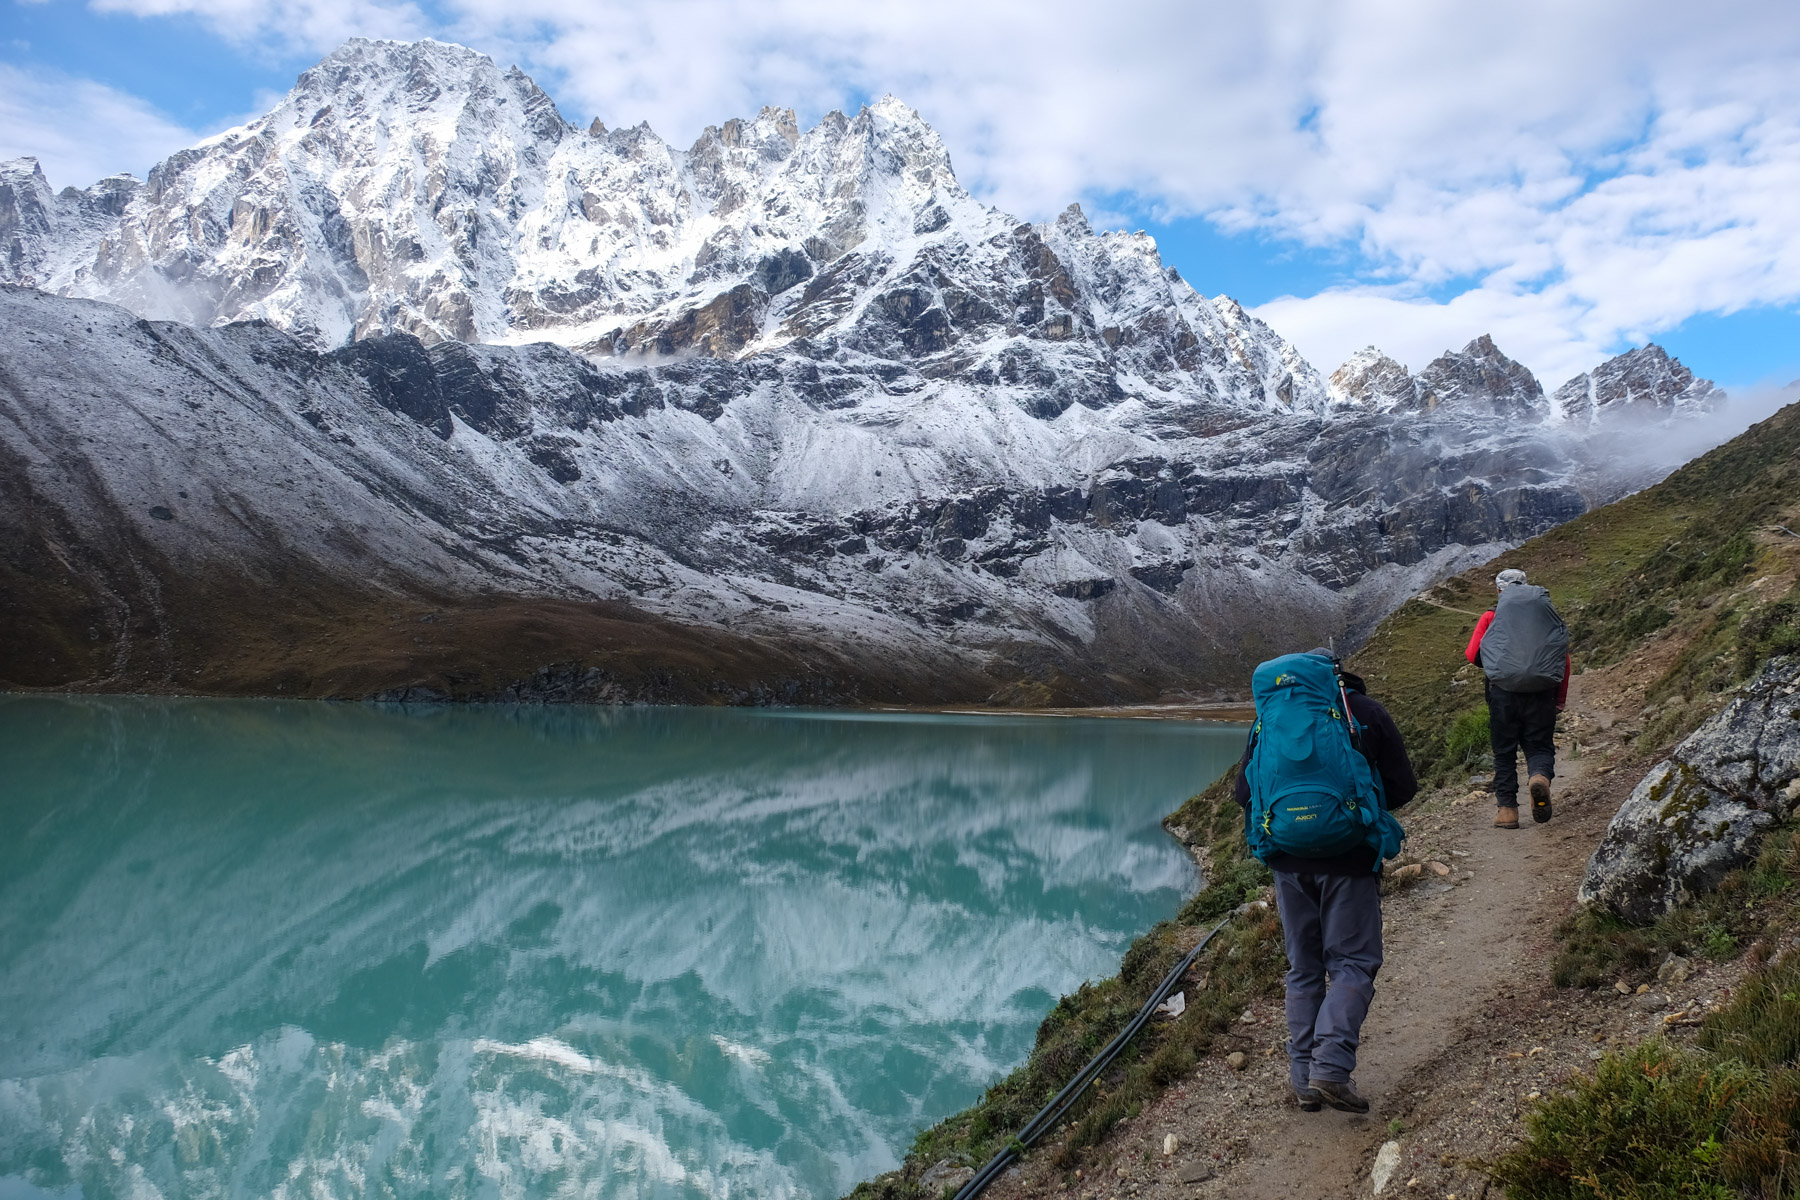 Kala Patthar & Gokyo, Everest 3 pass #3 71